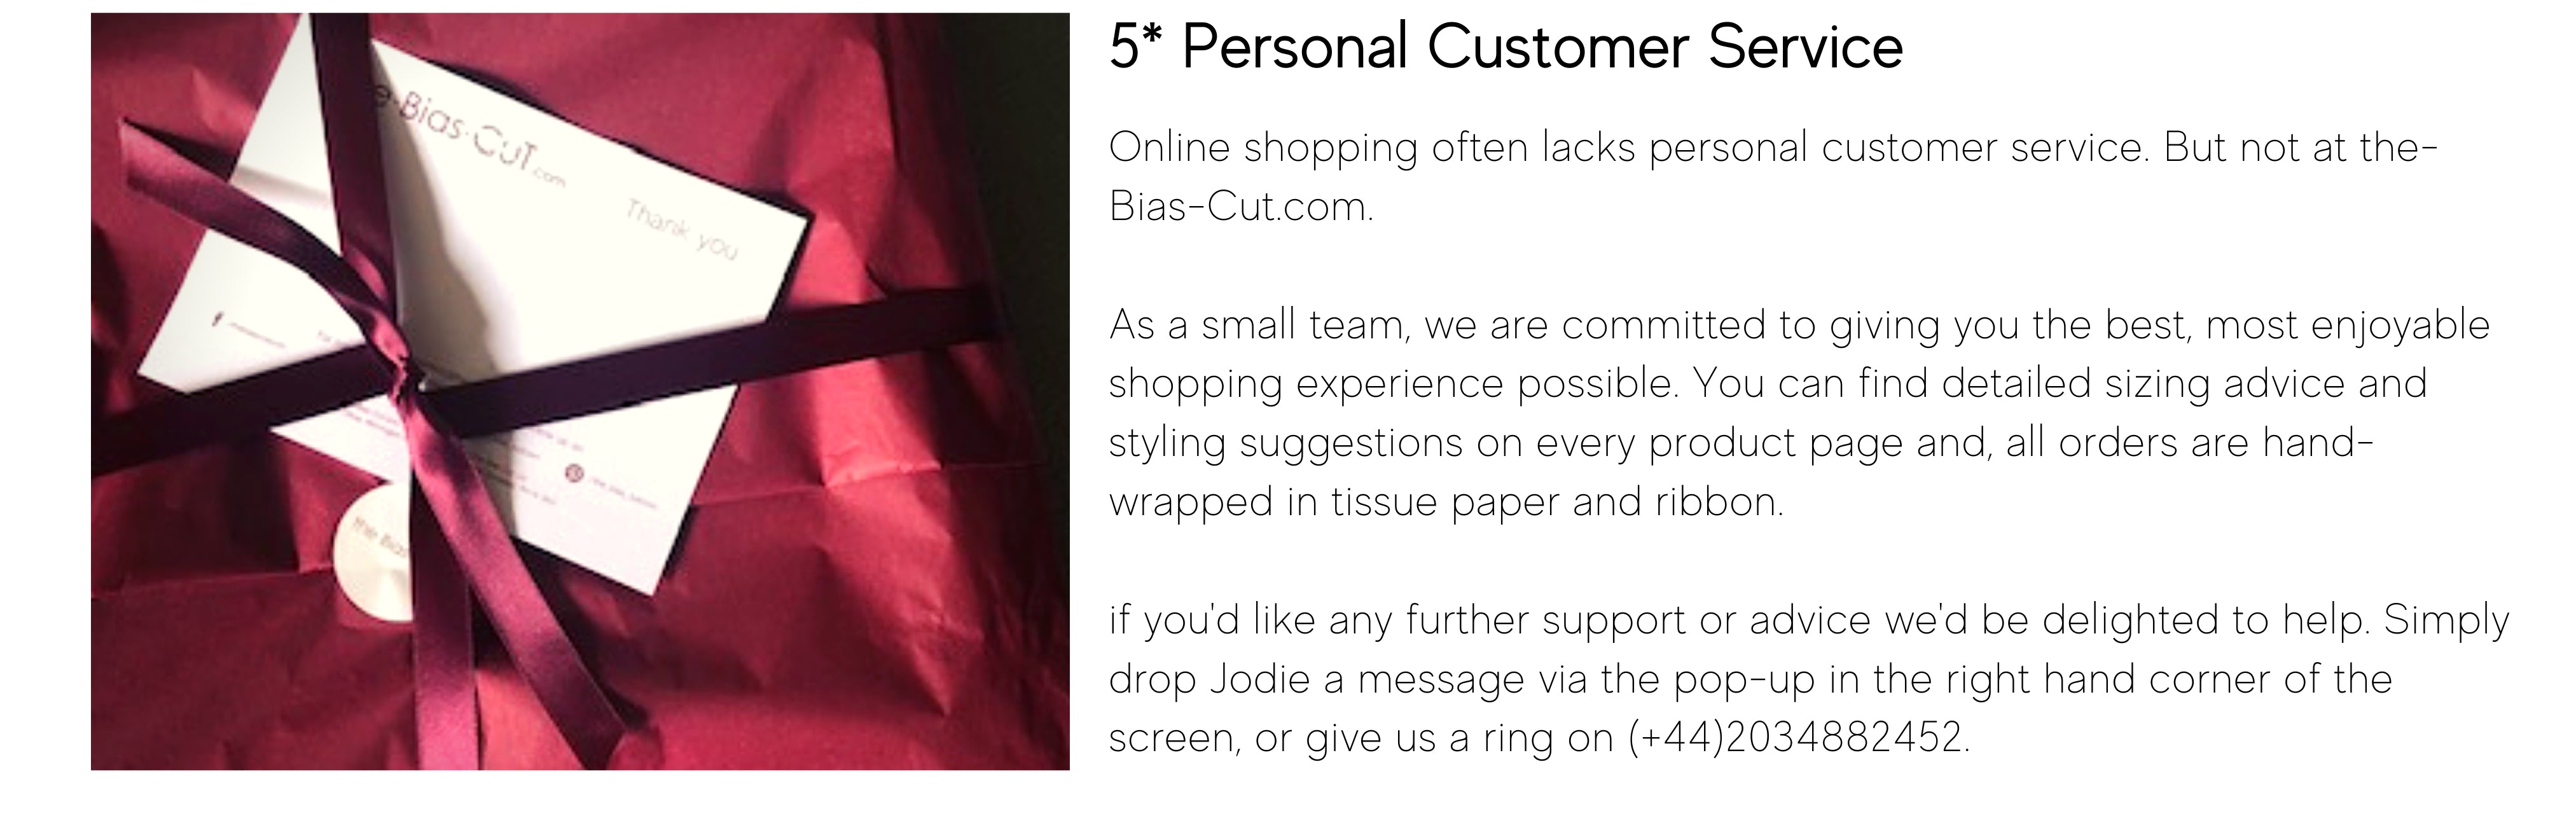 Online shopping often lacks personal customer service. But not at the-Bias-Cut.com.  As a small team, we are committed to giving you the best, most enjoyable shopping experience possible. You can find detailed sizing advice and styling suggestions on every product page and, all orders are hand-wrapped in tissue paper and ribbon.   if you'd like any further support or advice we'd be delighted to help. Simply drop Jodie a message via the pop-up in the right hand corner of the screen, or give us a ring on (+44)2034882452.